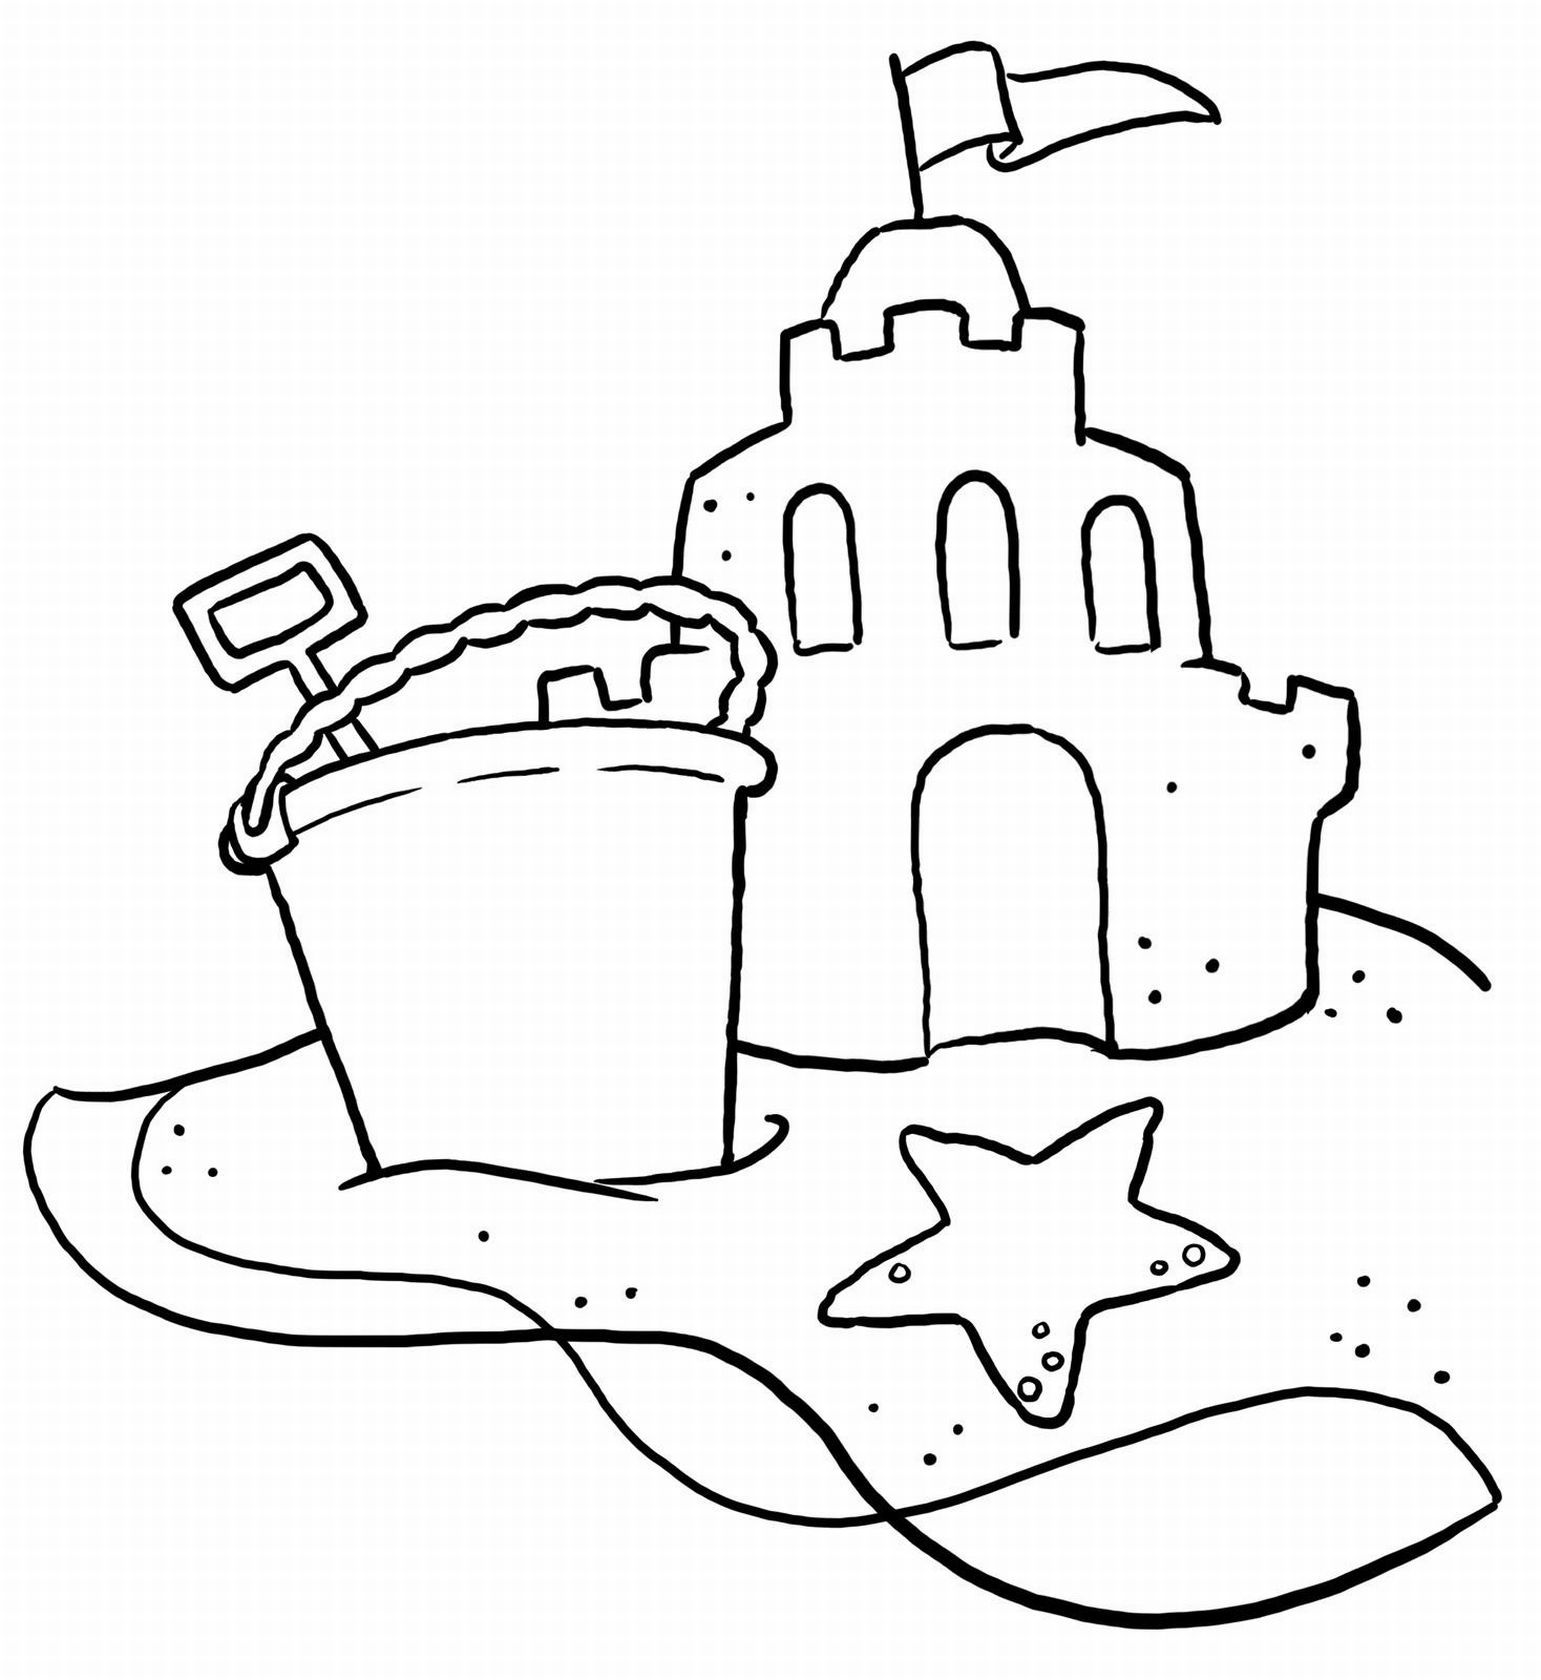 Beach Coloring Pages 20 Free Printable Sheets to Color Beach